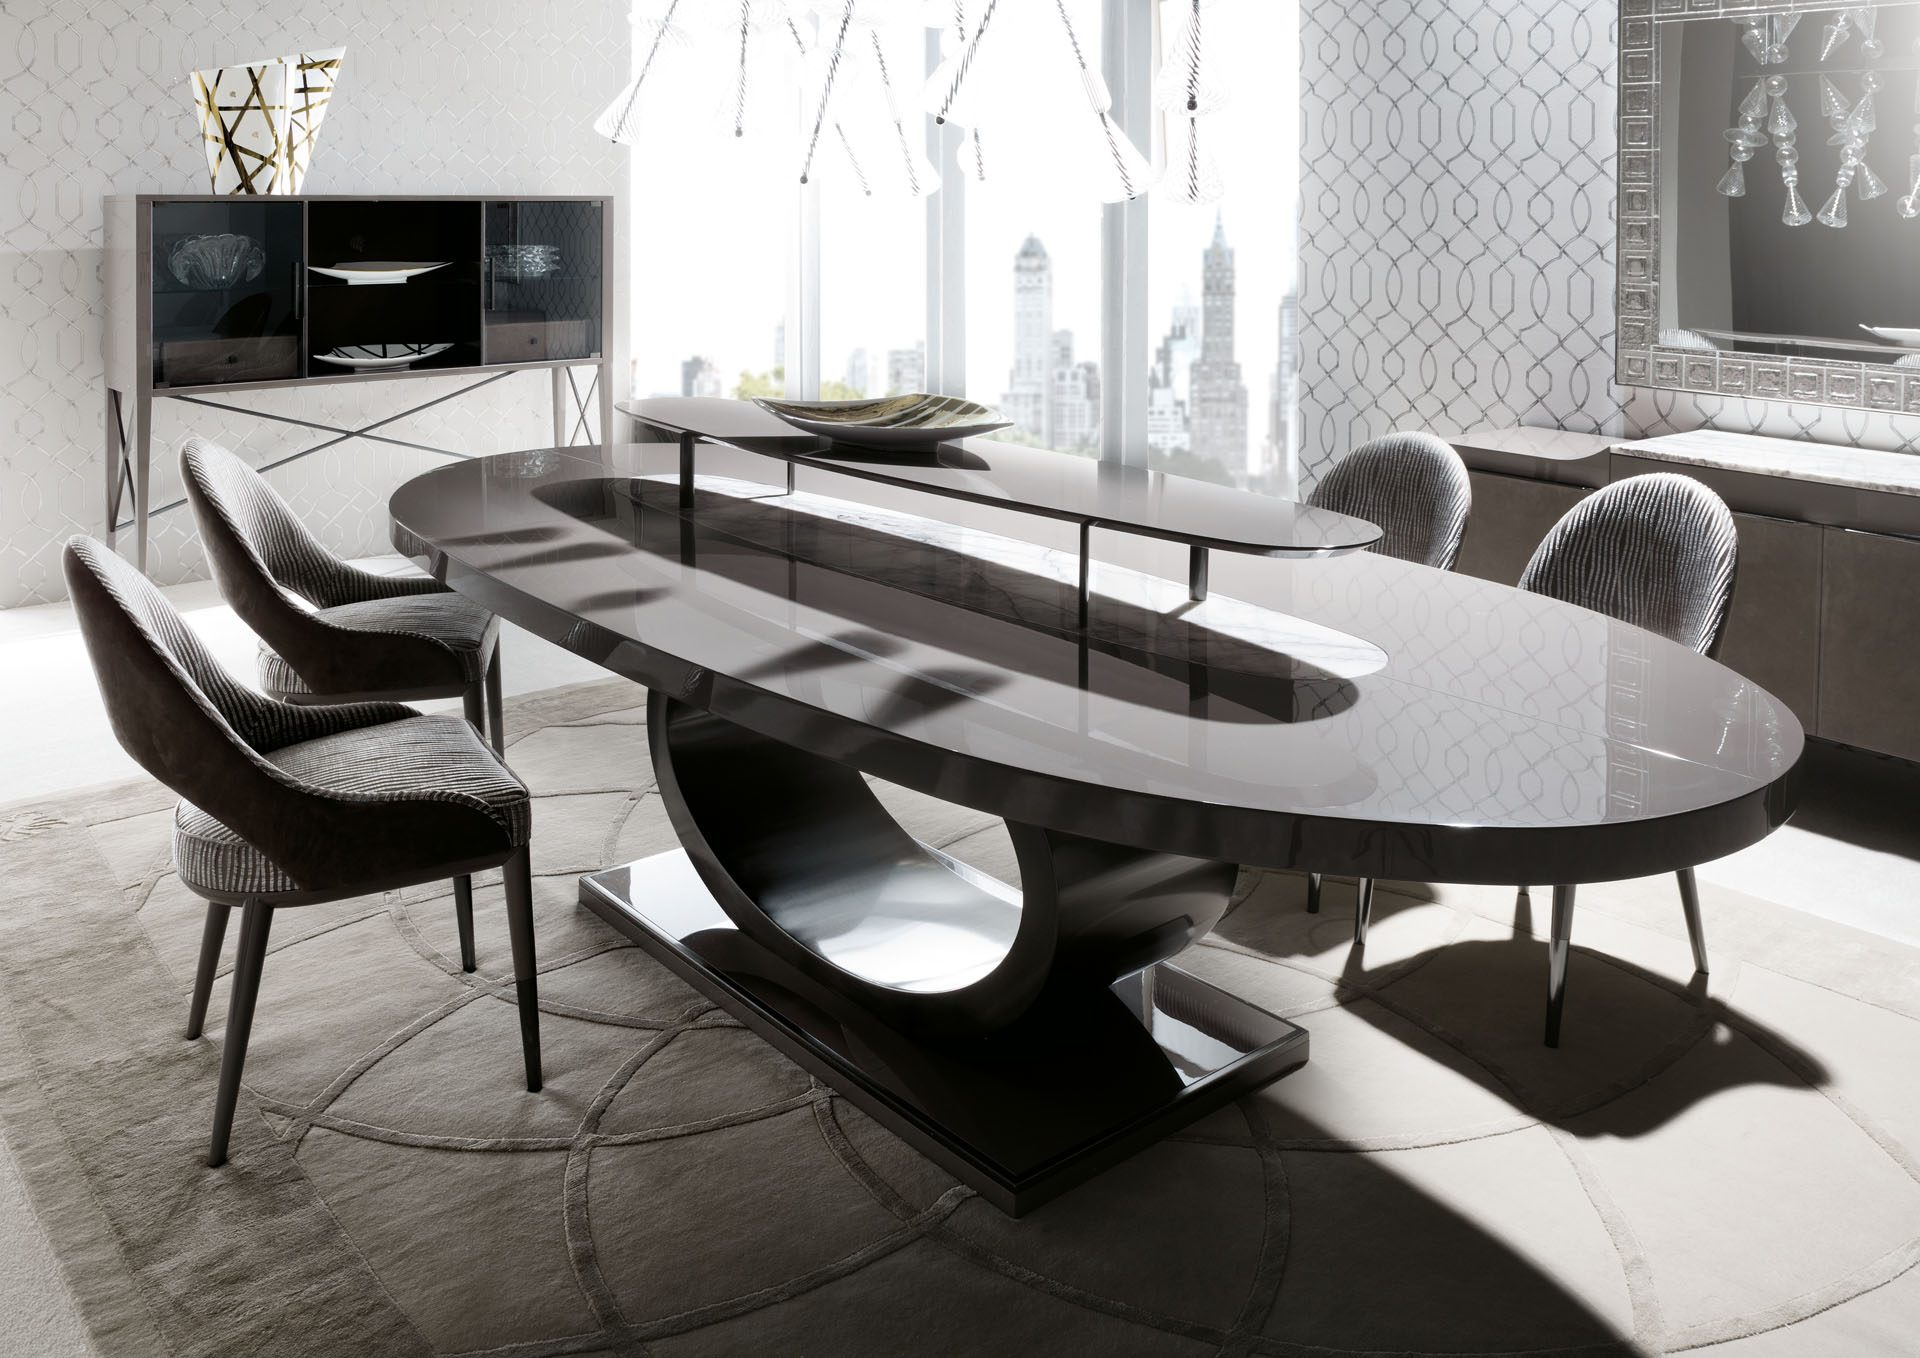 Vision Oval Dining Table